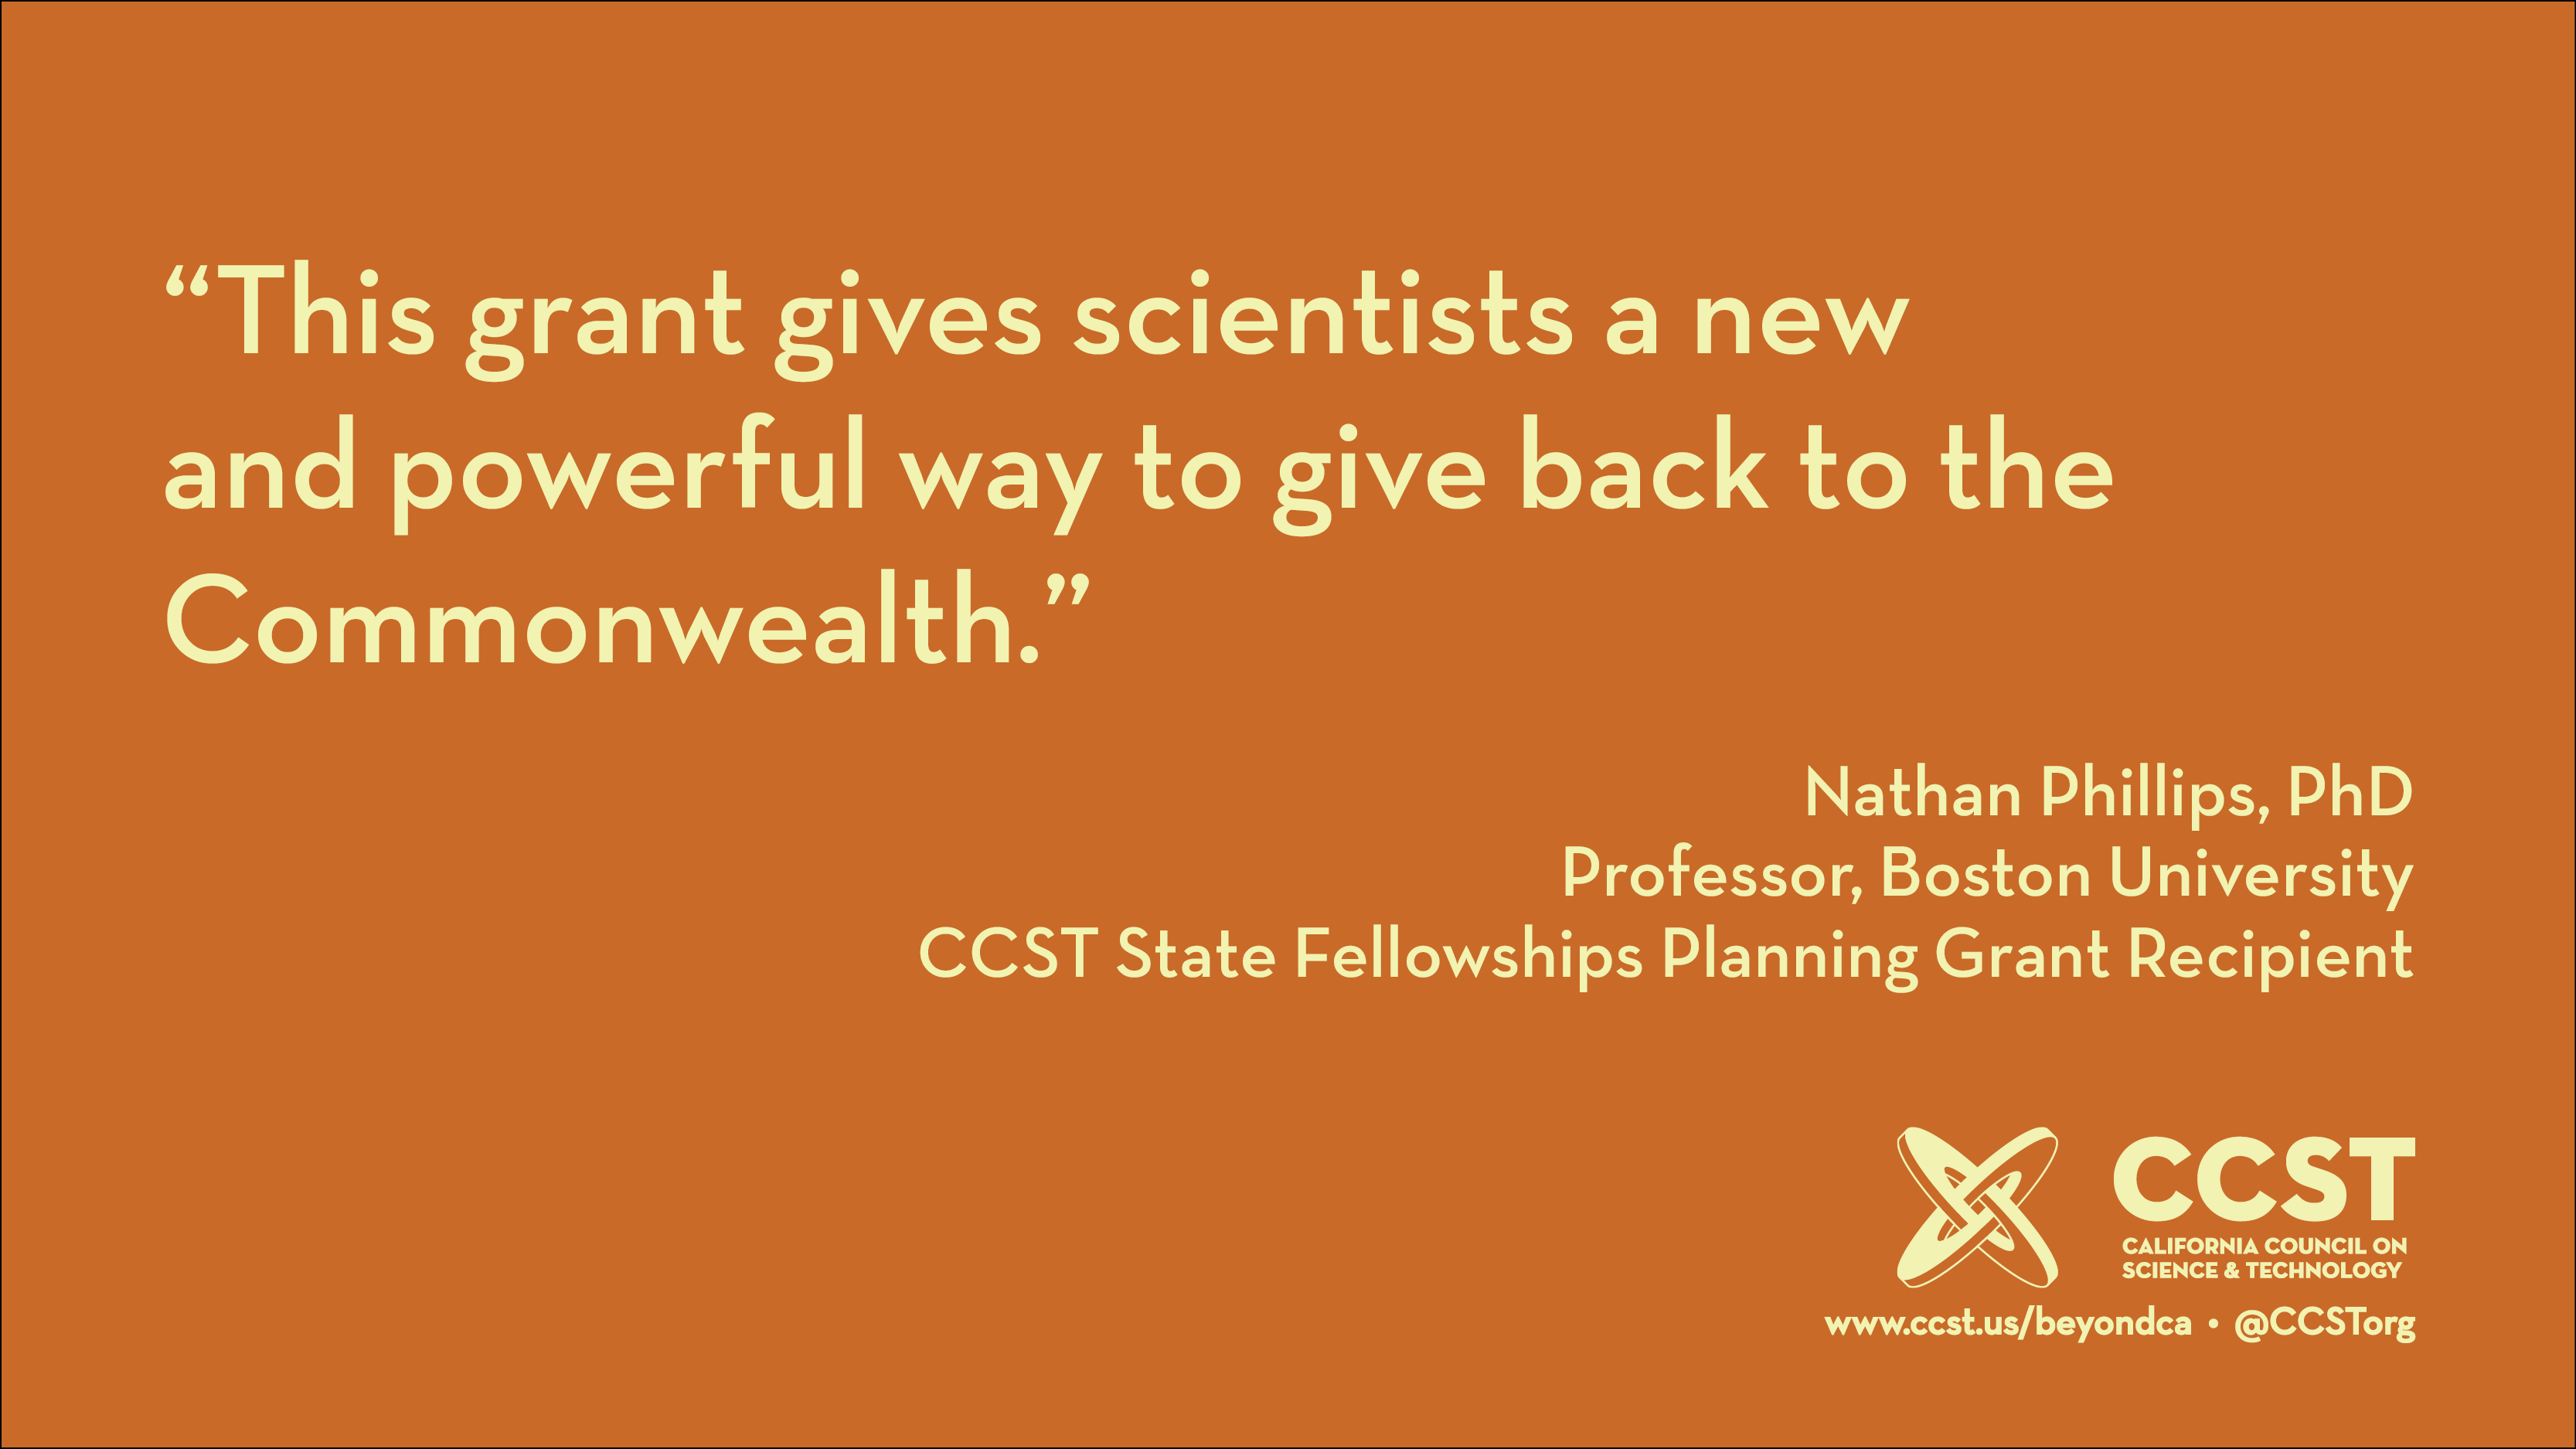 "This image features a quote from Boston University professor Nathan Phillips, who writes: ""This grant gives scientists a new and powerful way to give back to the Commonwealth."""